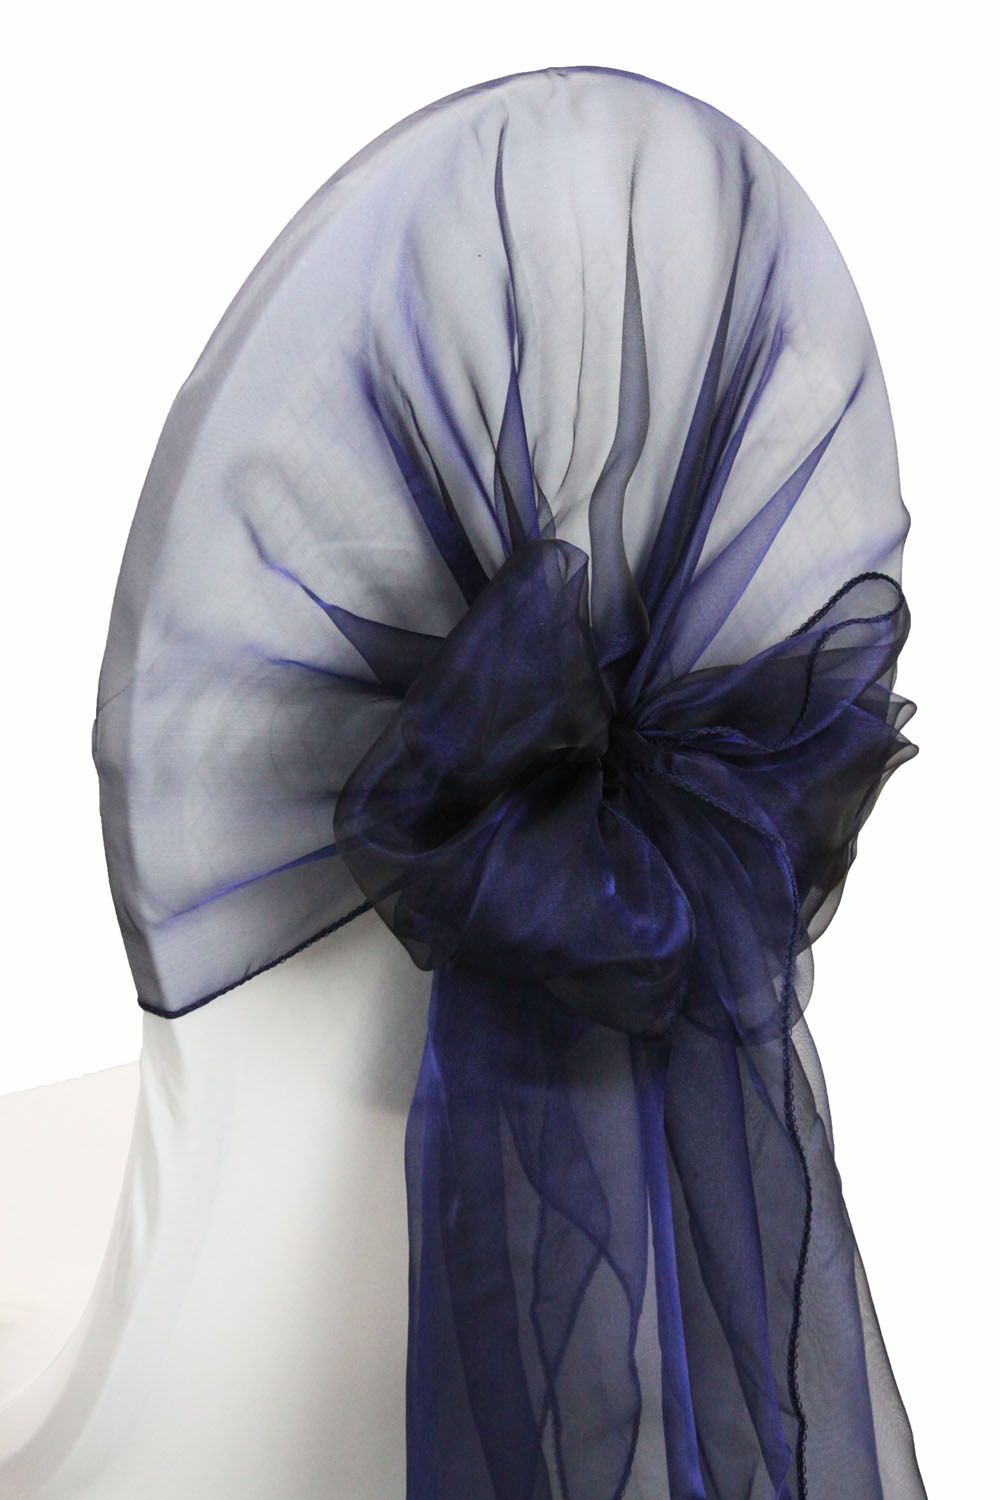 snow organza chair caps hoods navy blue wedding navy navy blue